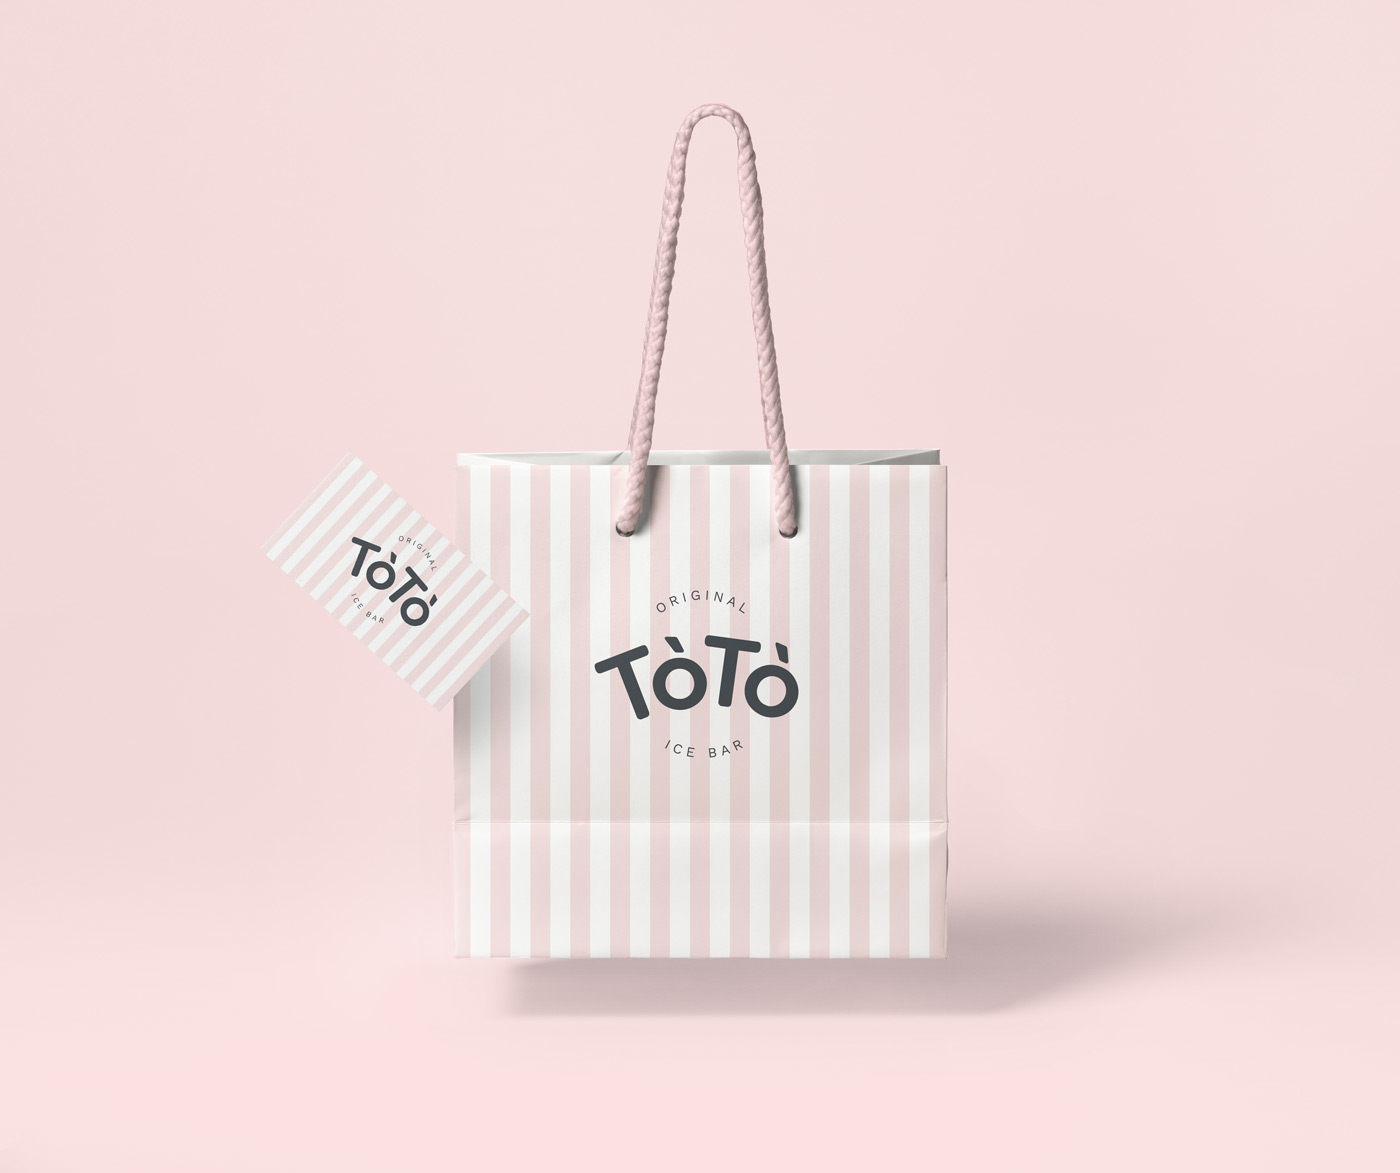 Rok Jurman Design for ToTo Ice Bar (Koper) - bag